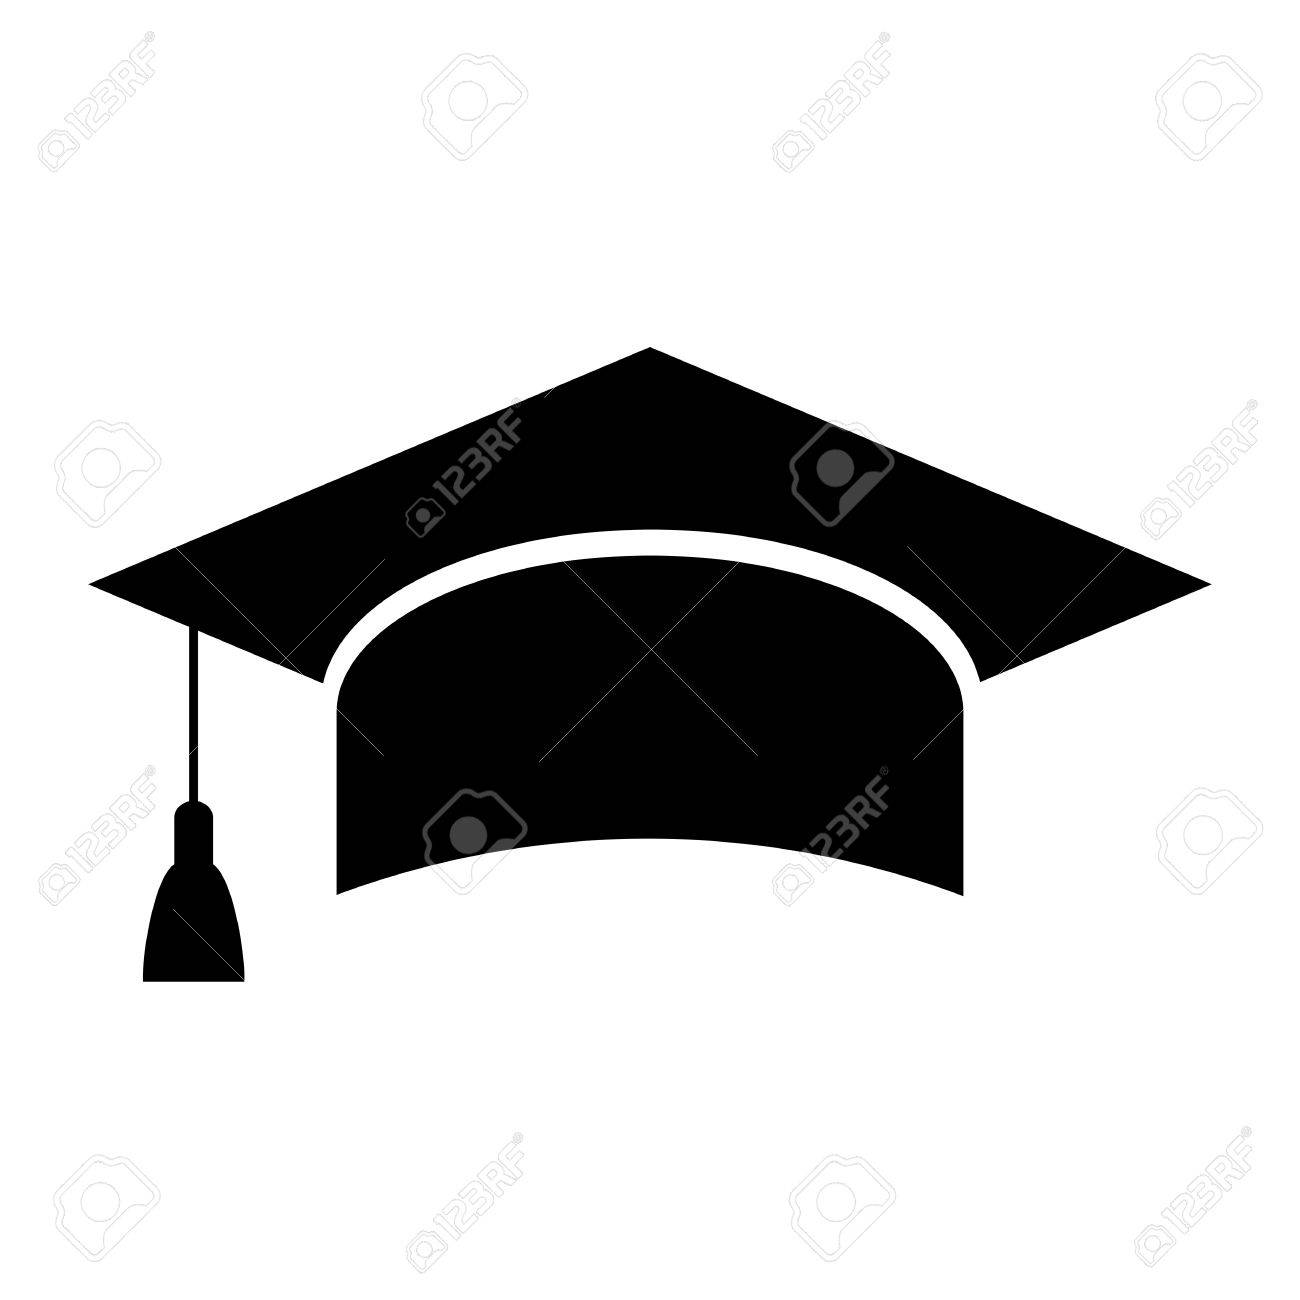 mortarboard academic cap education icon royalty free cliparts